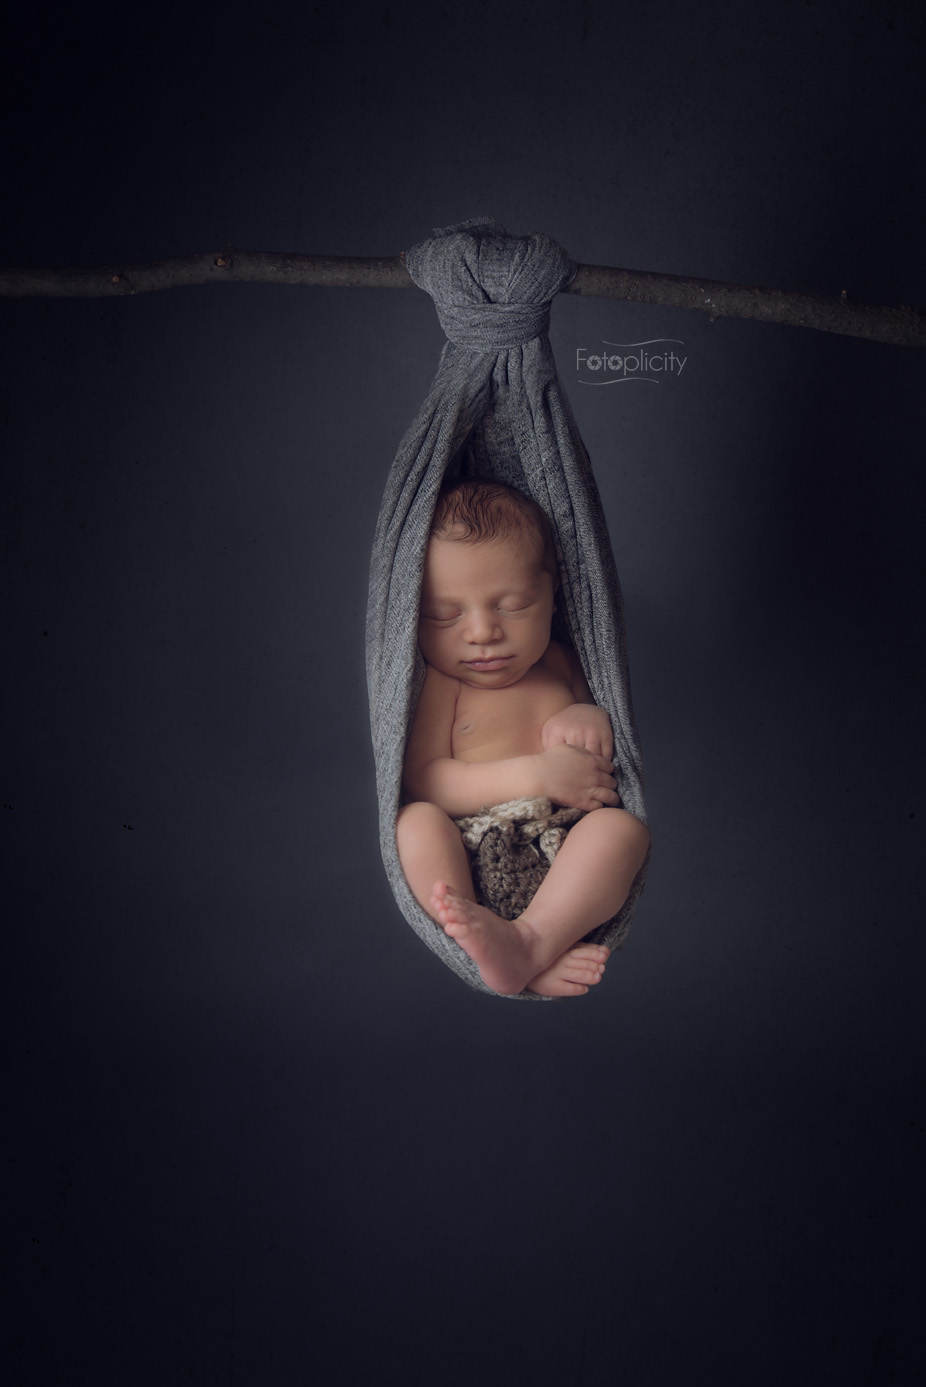 Newborn Photography by Fotoplicity, Central New Jersey